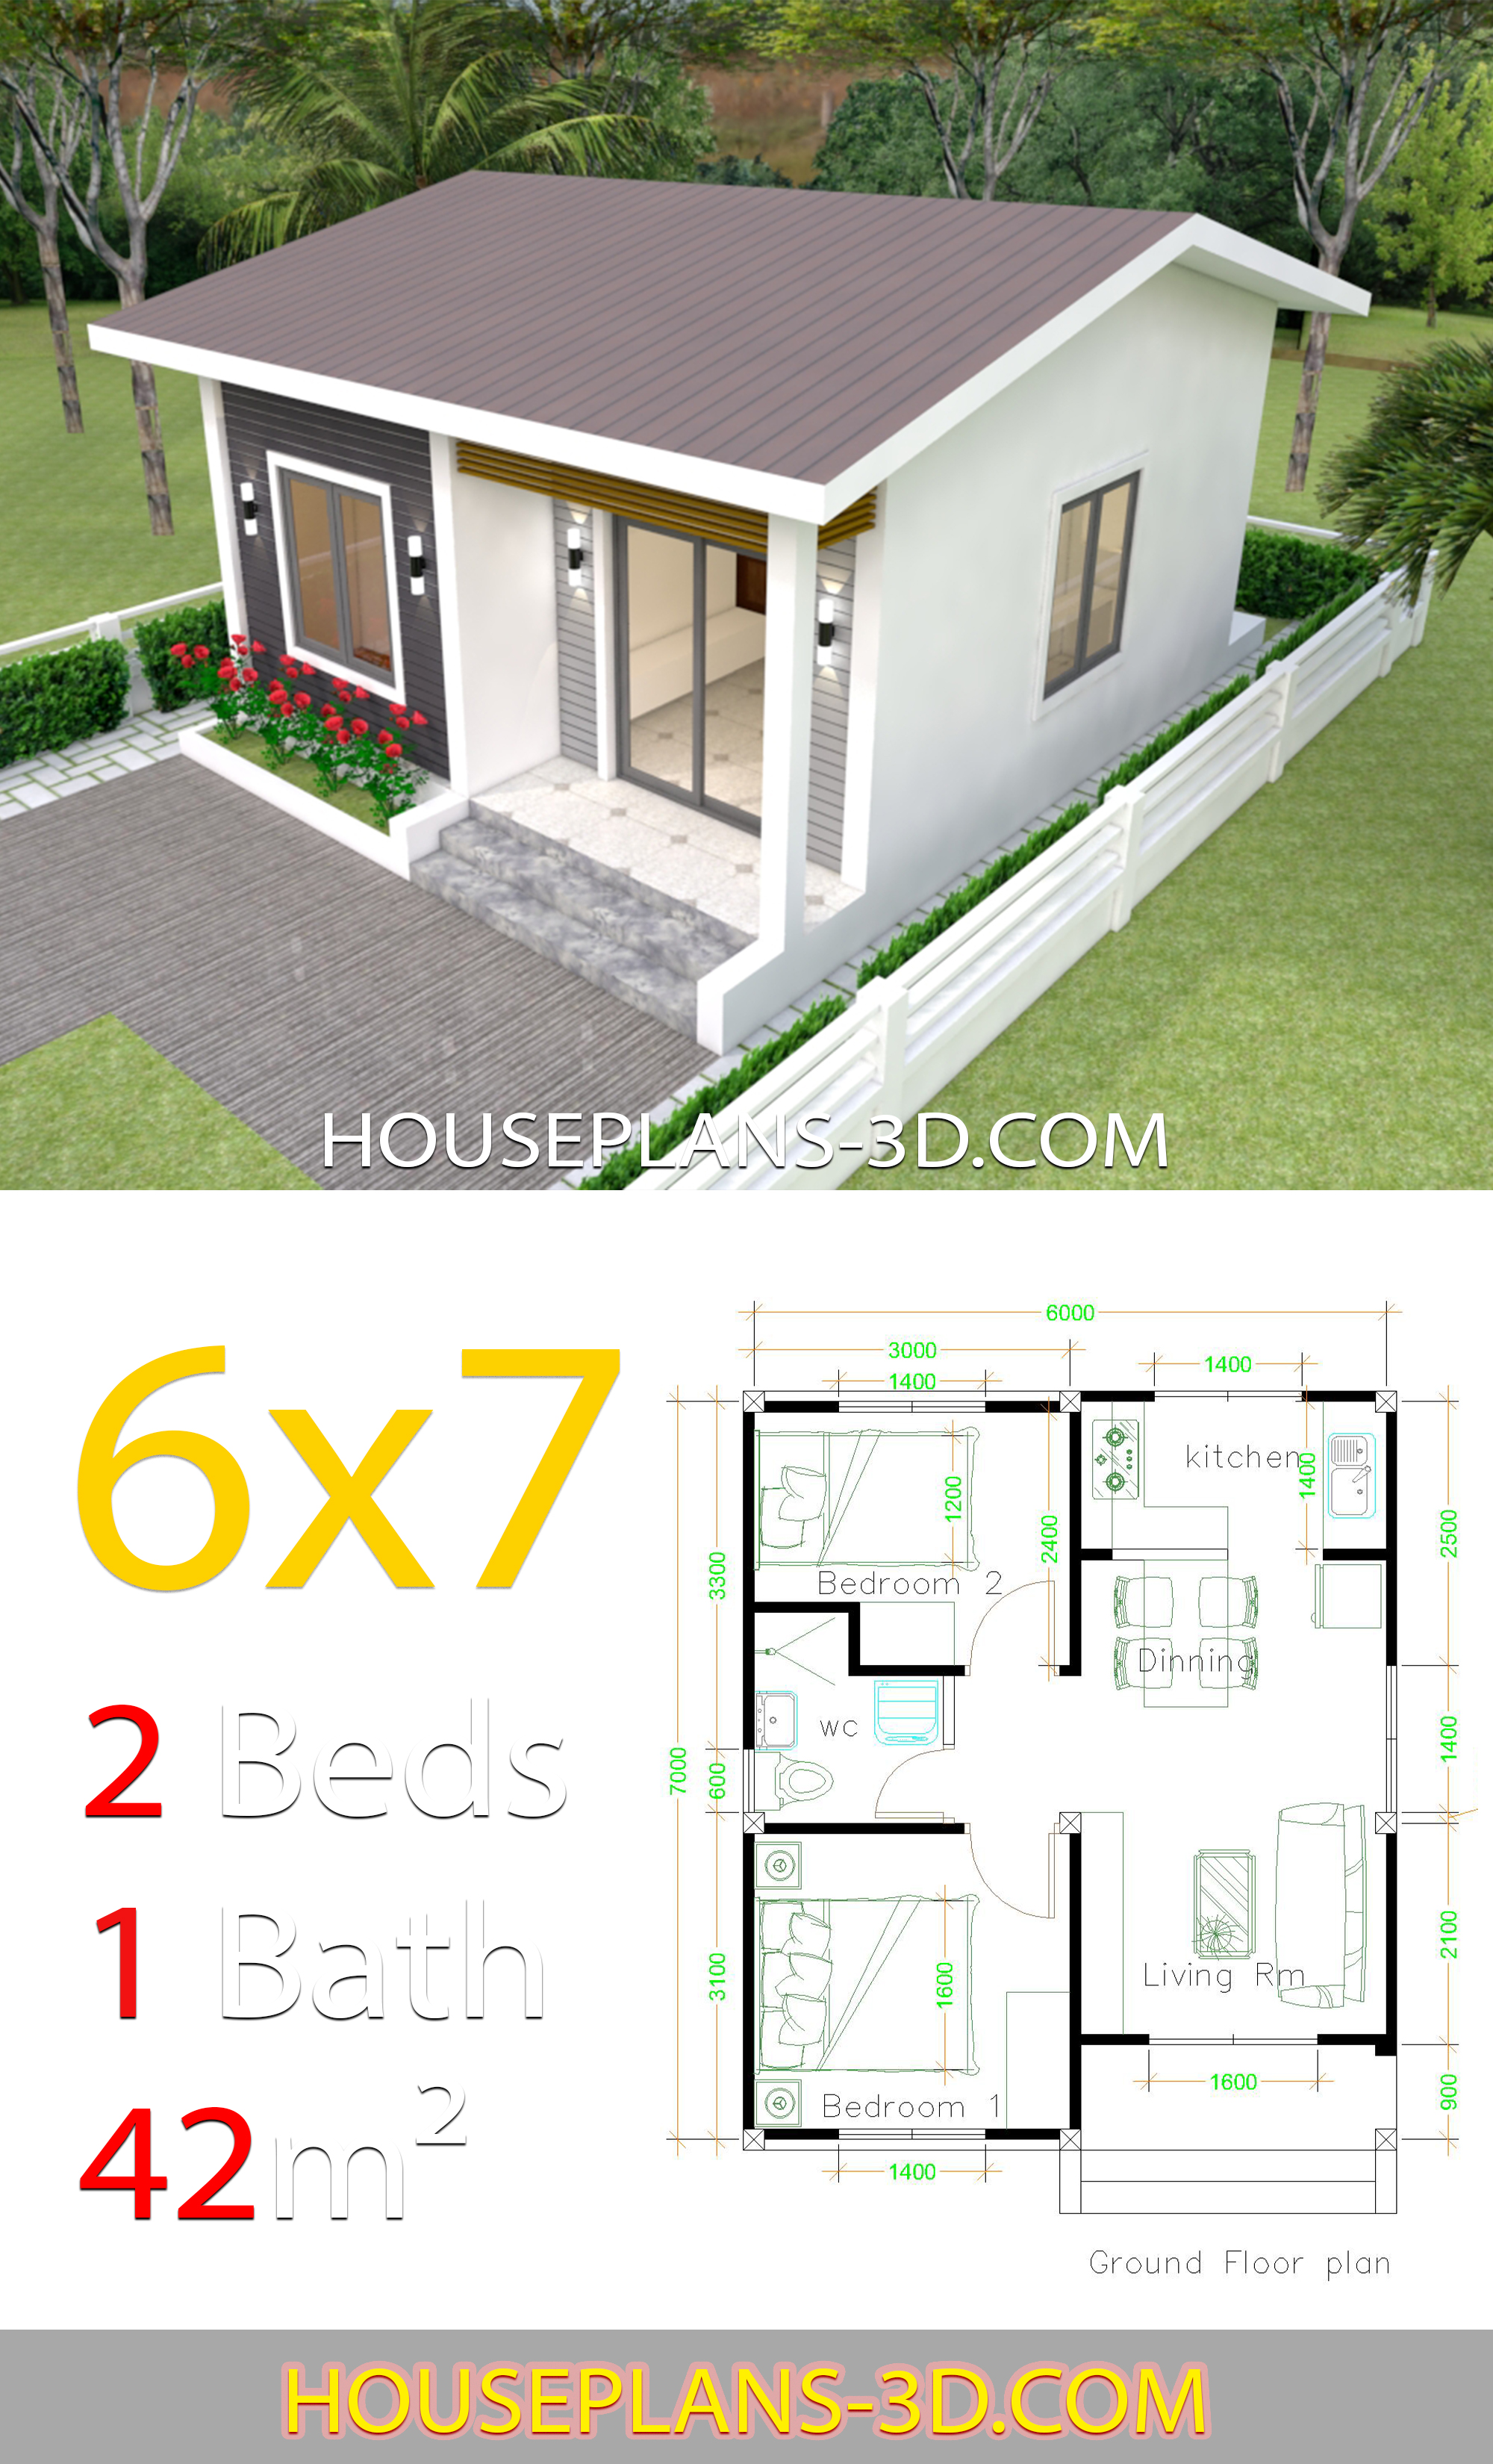 My 3d Room Design: House Design 6x7 With 2 Bedrooms